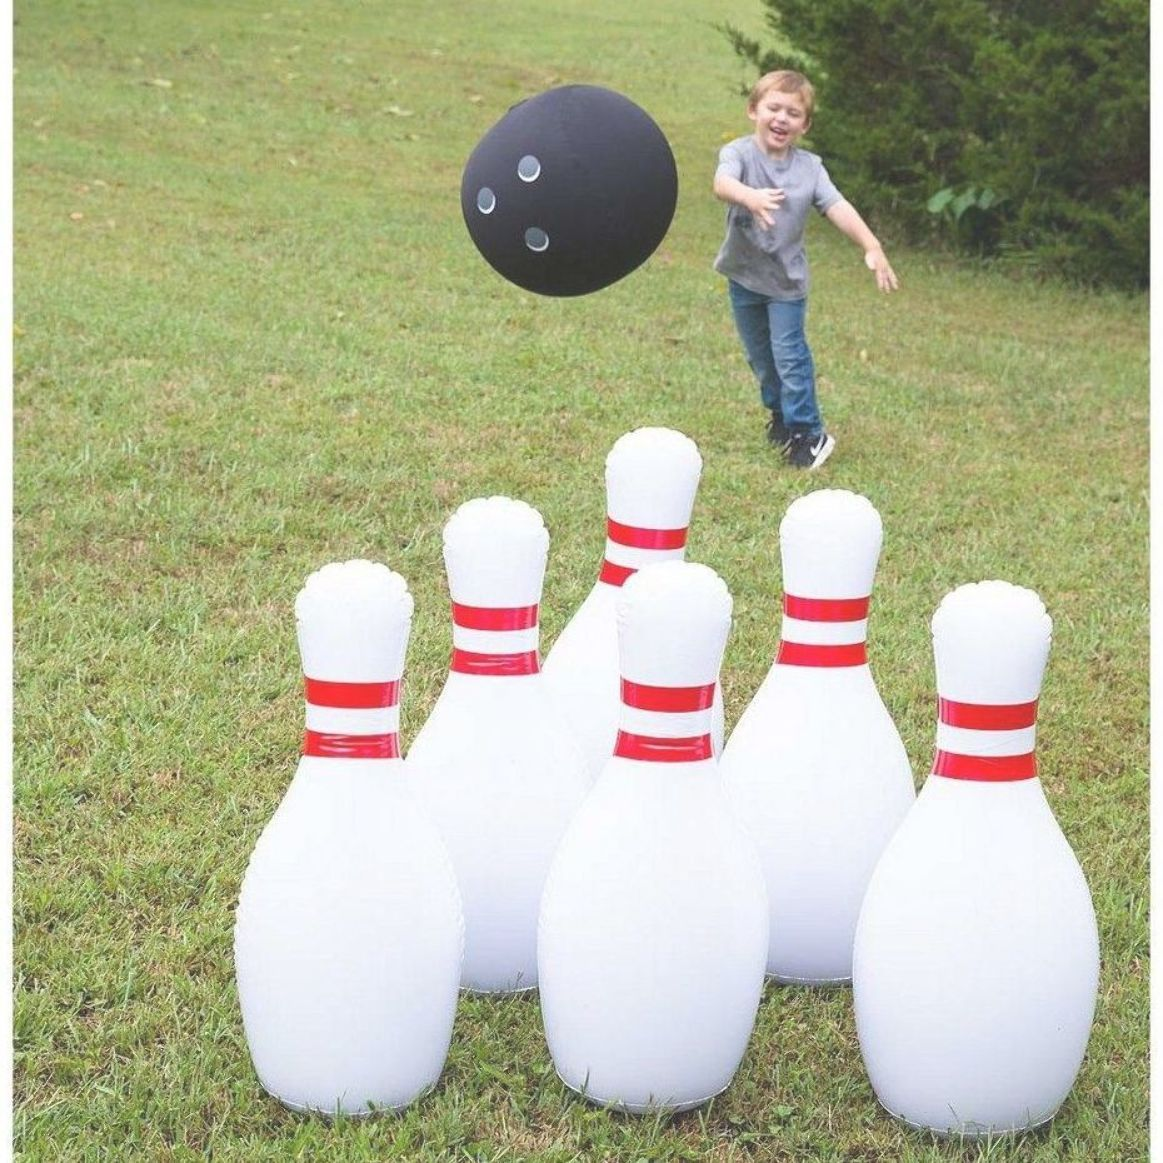 Giant Inflatable Bowling Game For Kids Use Backyard Game Indoors Or Outdoors Hearthsong Bowling Games For Kids Bowling Games Backyard Games Kids